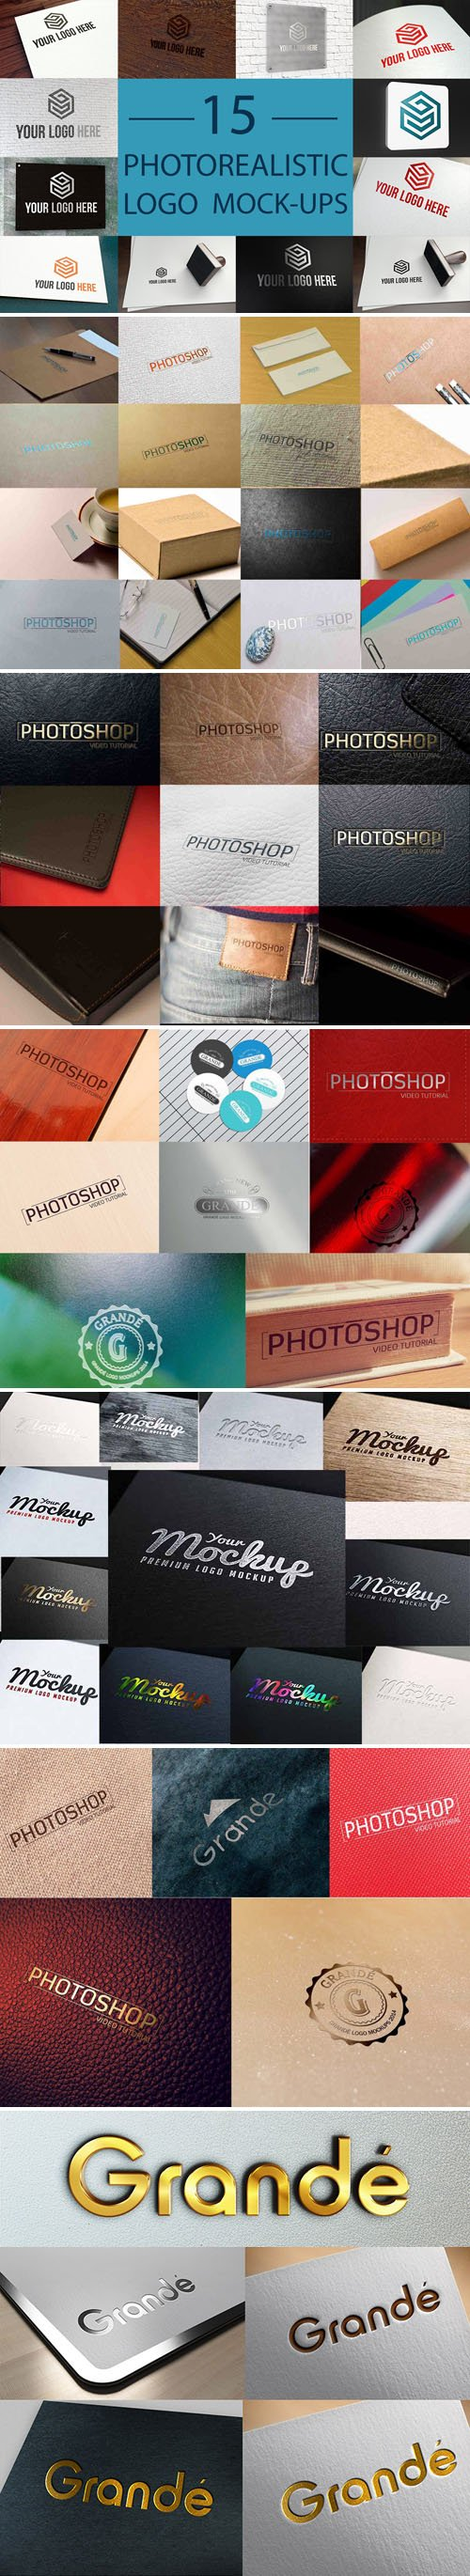 70 Awesome Logos PSD Mockups Collection